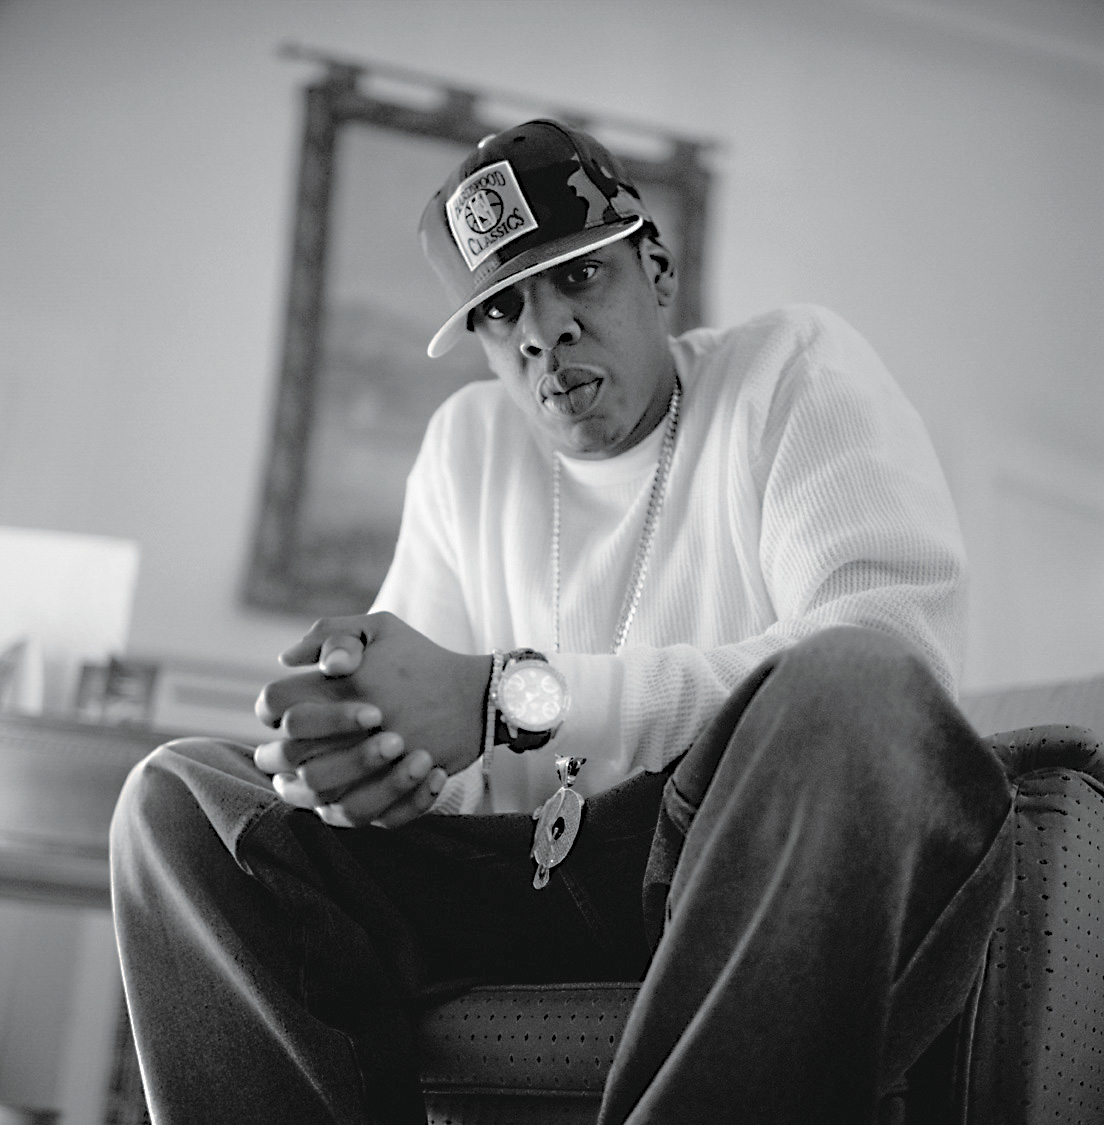 Jay-Z Set to Perform His 4:44 Tour on November 9 at the Smoothie King Center